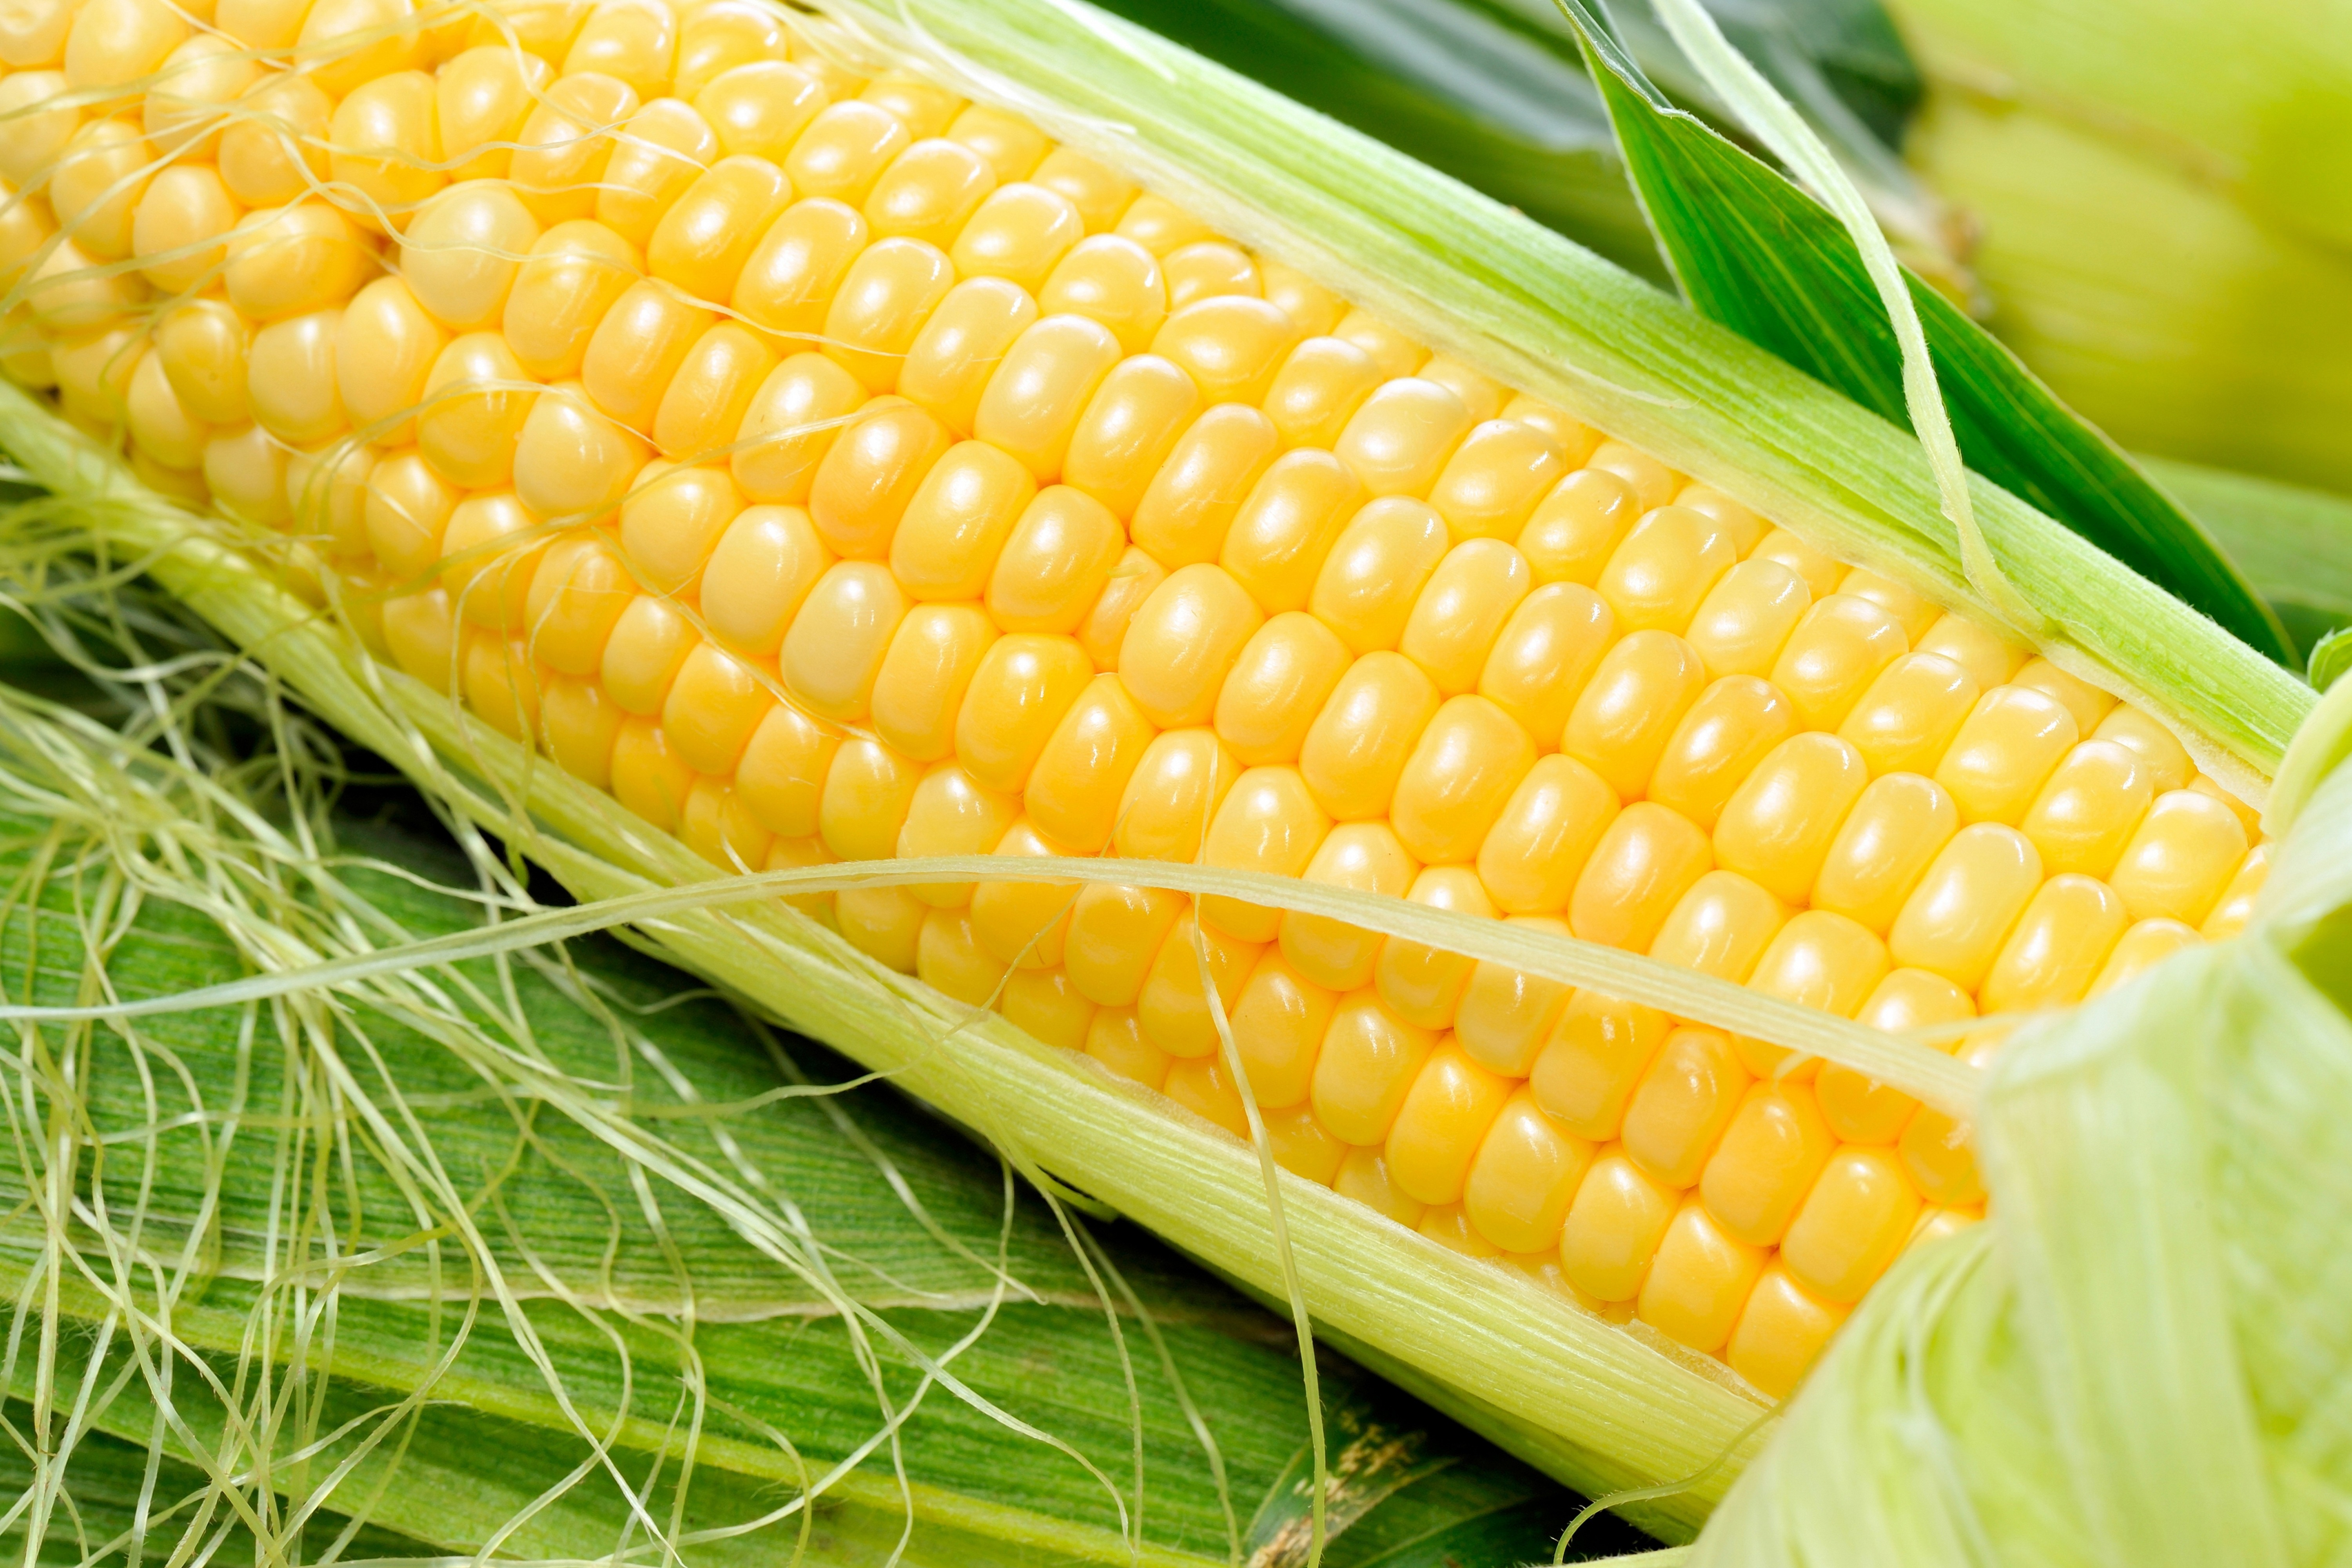 36 Corn HD Wallpapers | Backgrounds - Wallpaper Abyss